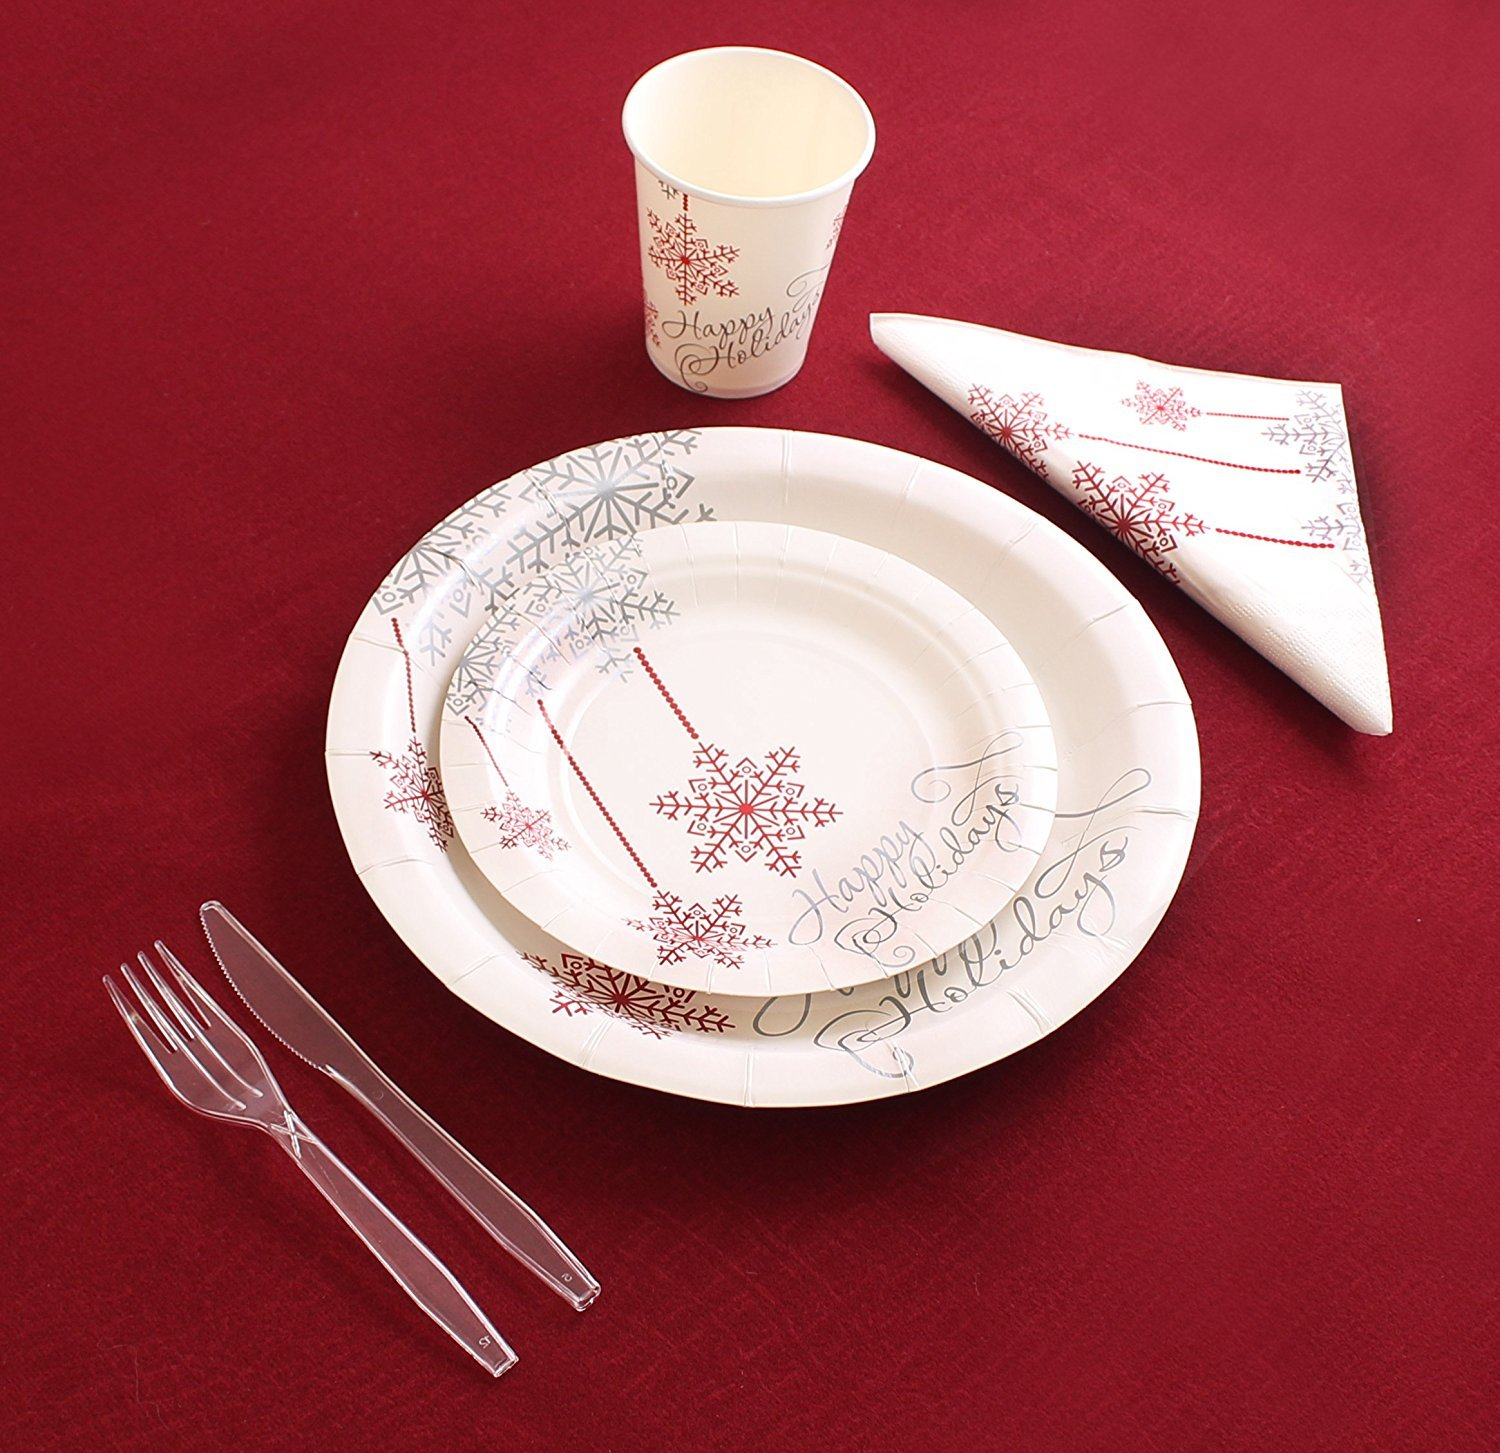 Amazon.com Christmas Disposable Dinnerware for 40 Guests 280 Pieces Set of Paper Plates Cups Napkins Plastic Forks and Knives (PARTY PACK FOR 40) ... & Amazon.com: Christmas Disposable Dinnerware for 40 Guests 280 ...